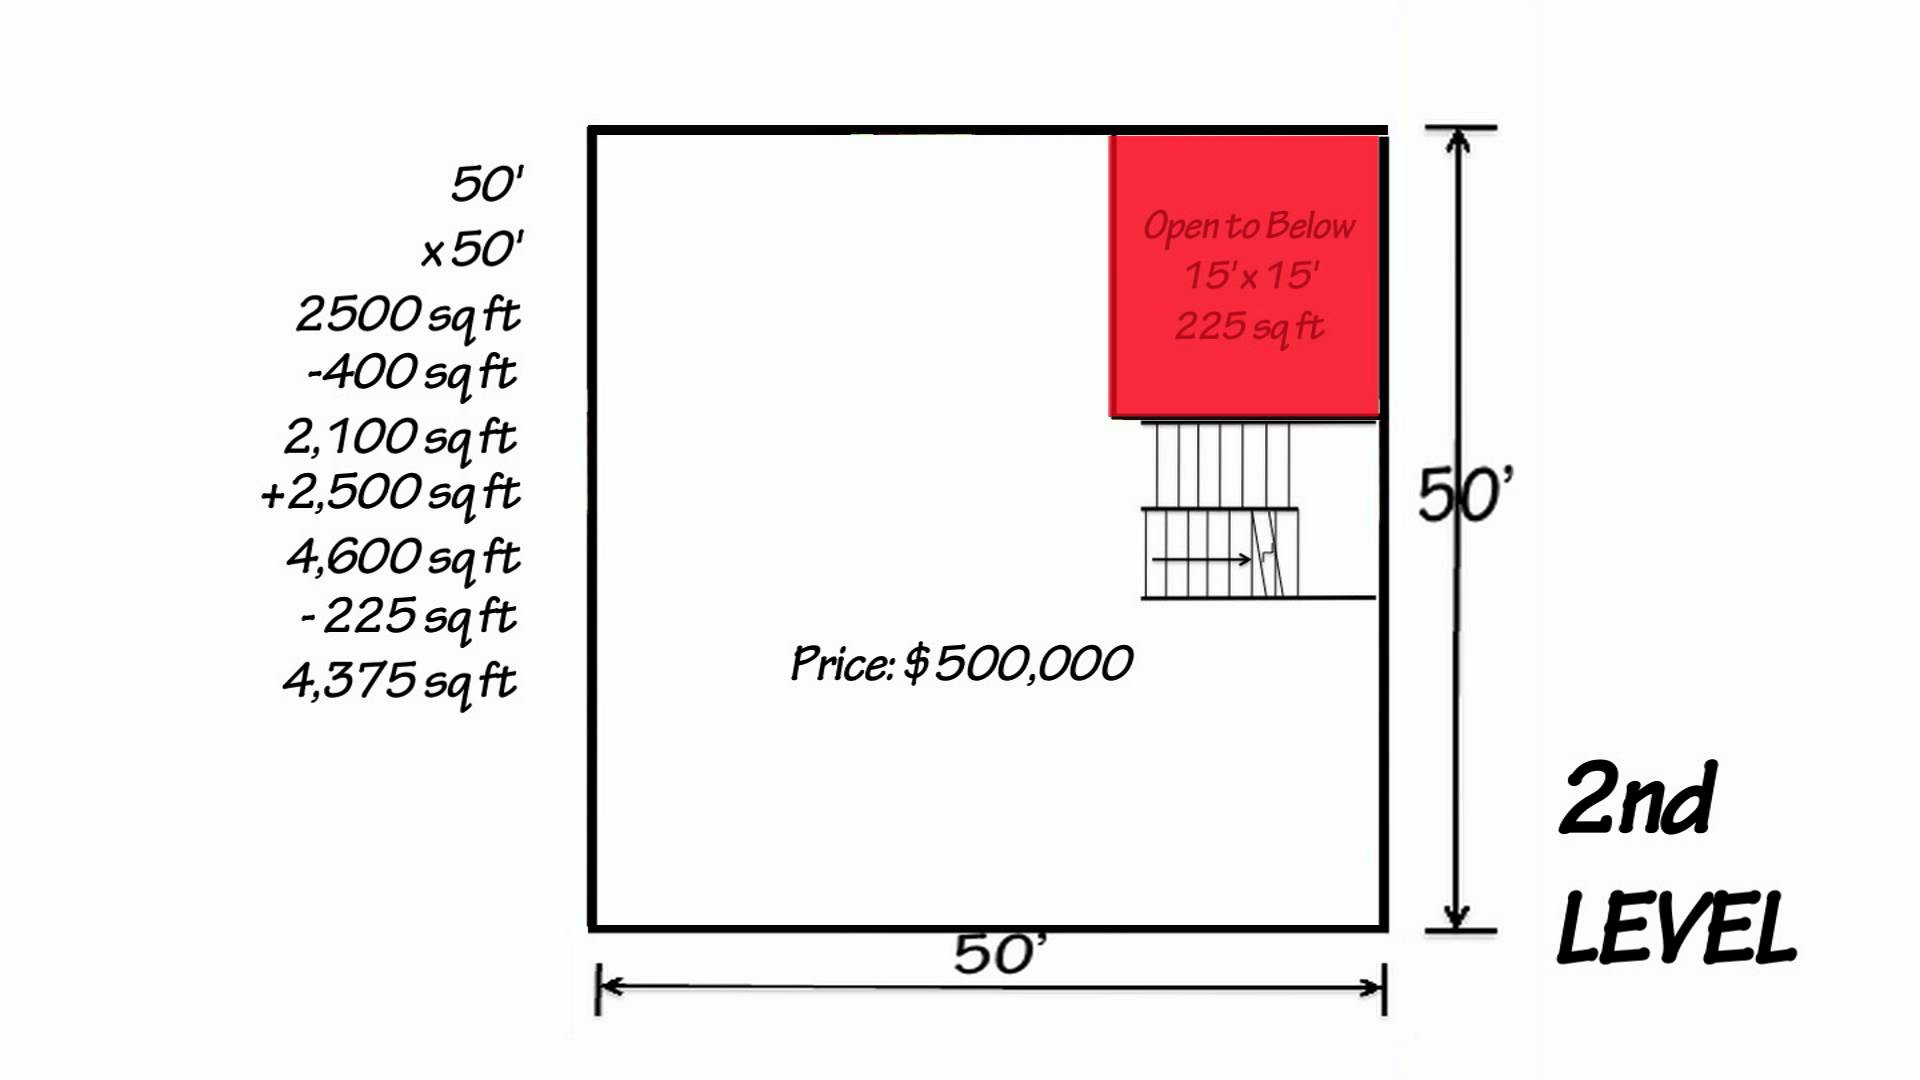 How to measure square footage of a room for carpet for Square footage of a room